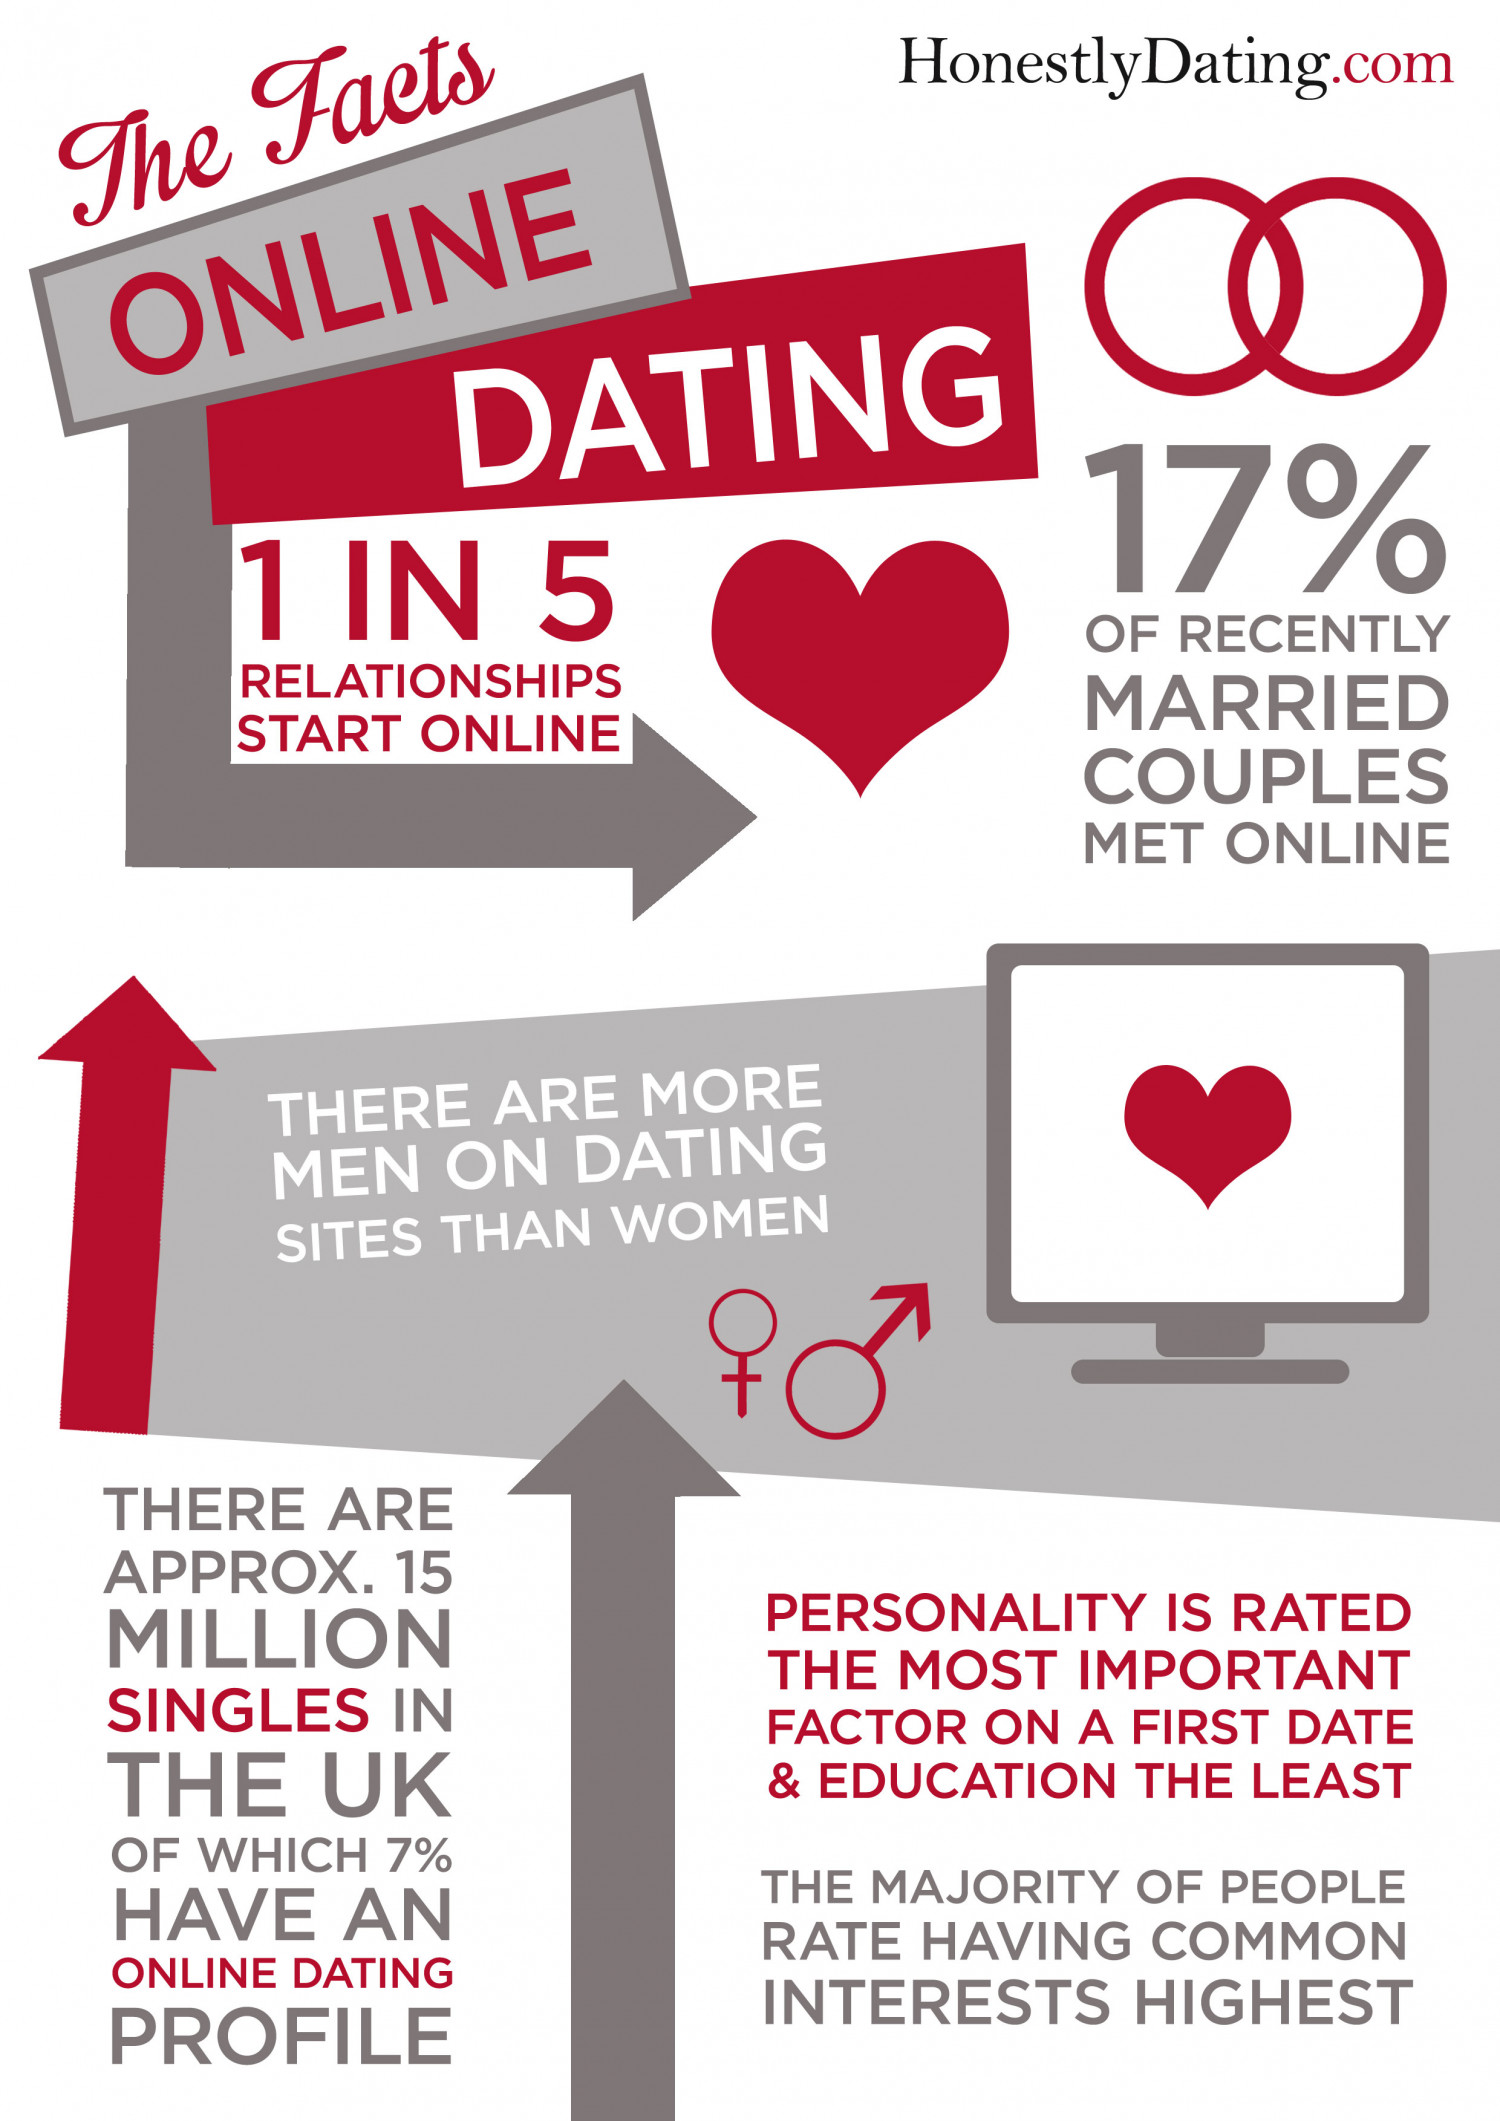 internet dating sites facts Online dating sites such as matchcom, eharmonycom and zooskcom take the traditional matchmaking process online and allow people to meet one another via the internet, with many encounters.